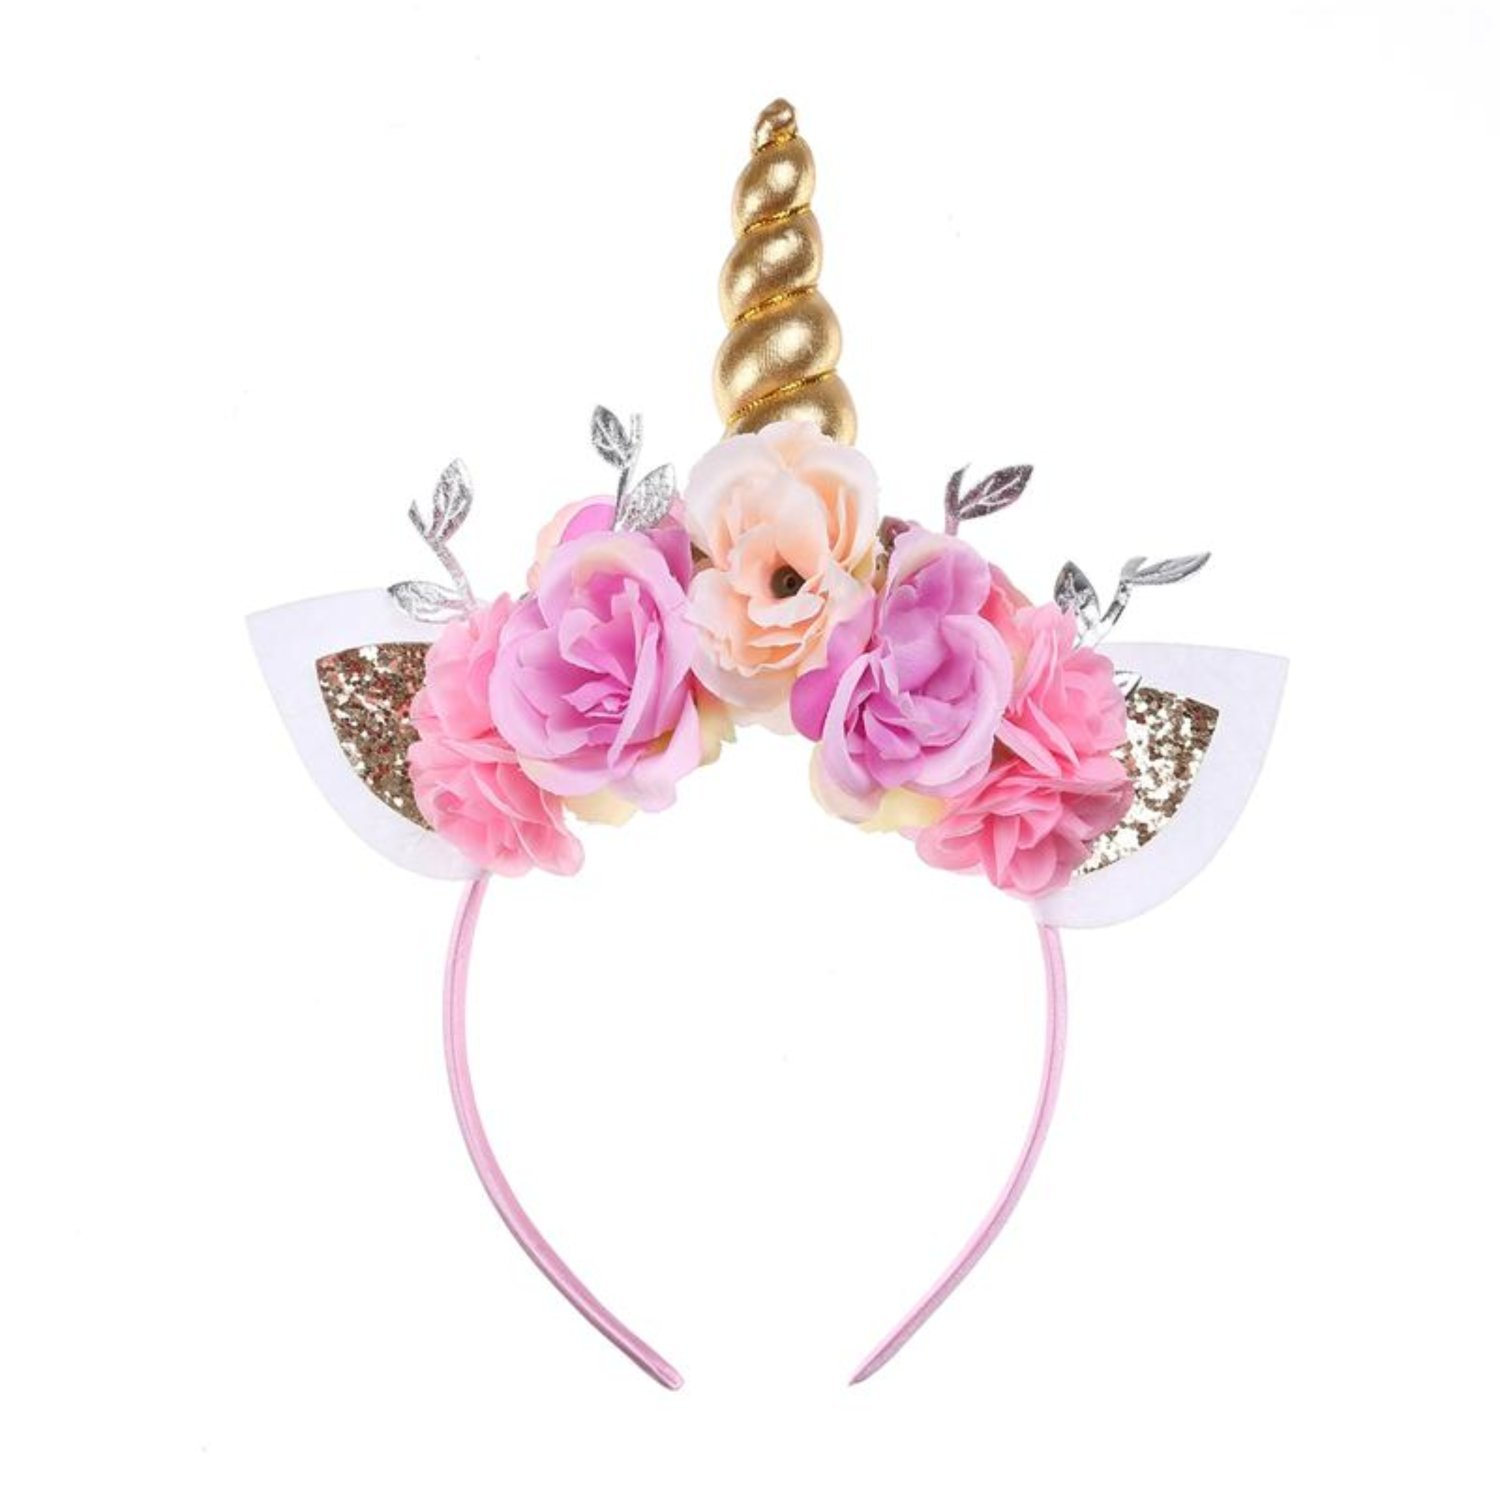 Unicorn Headband-Gold Unicorn Headband-Unicorn Headband Horn By Party Now Lahhey